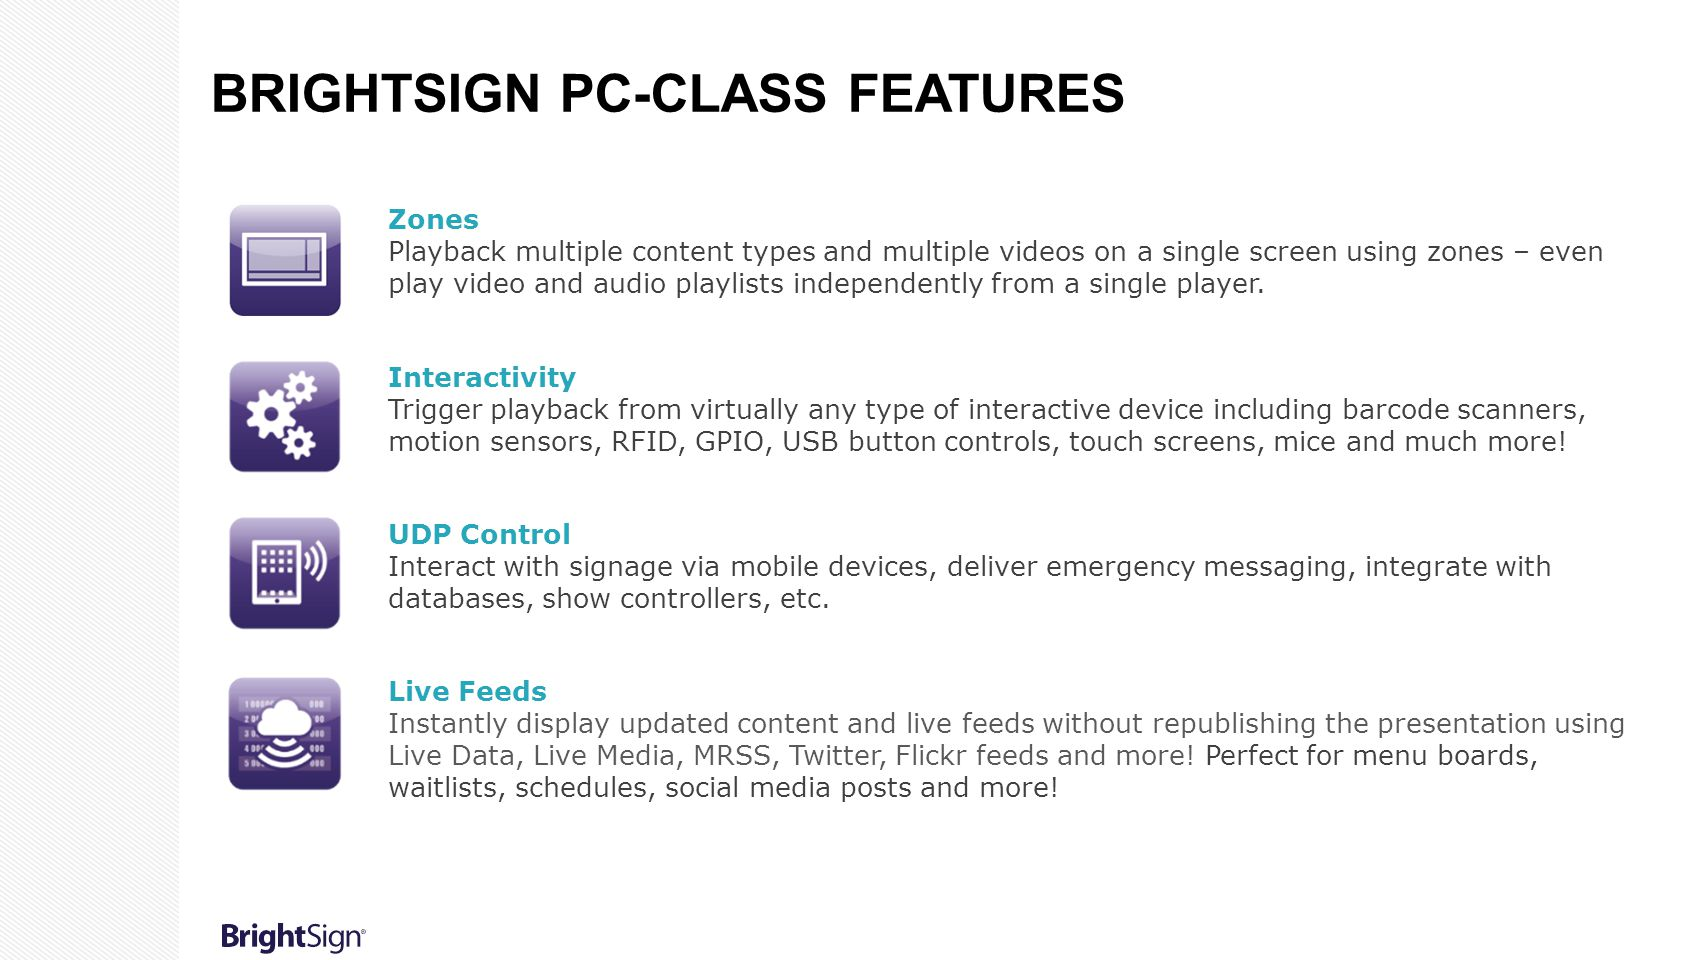 Zones Playback multiple content types and multiple videos on a single screen using zones – even play video and audio playlists independently from a si